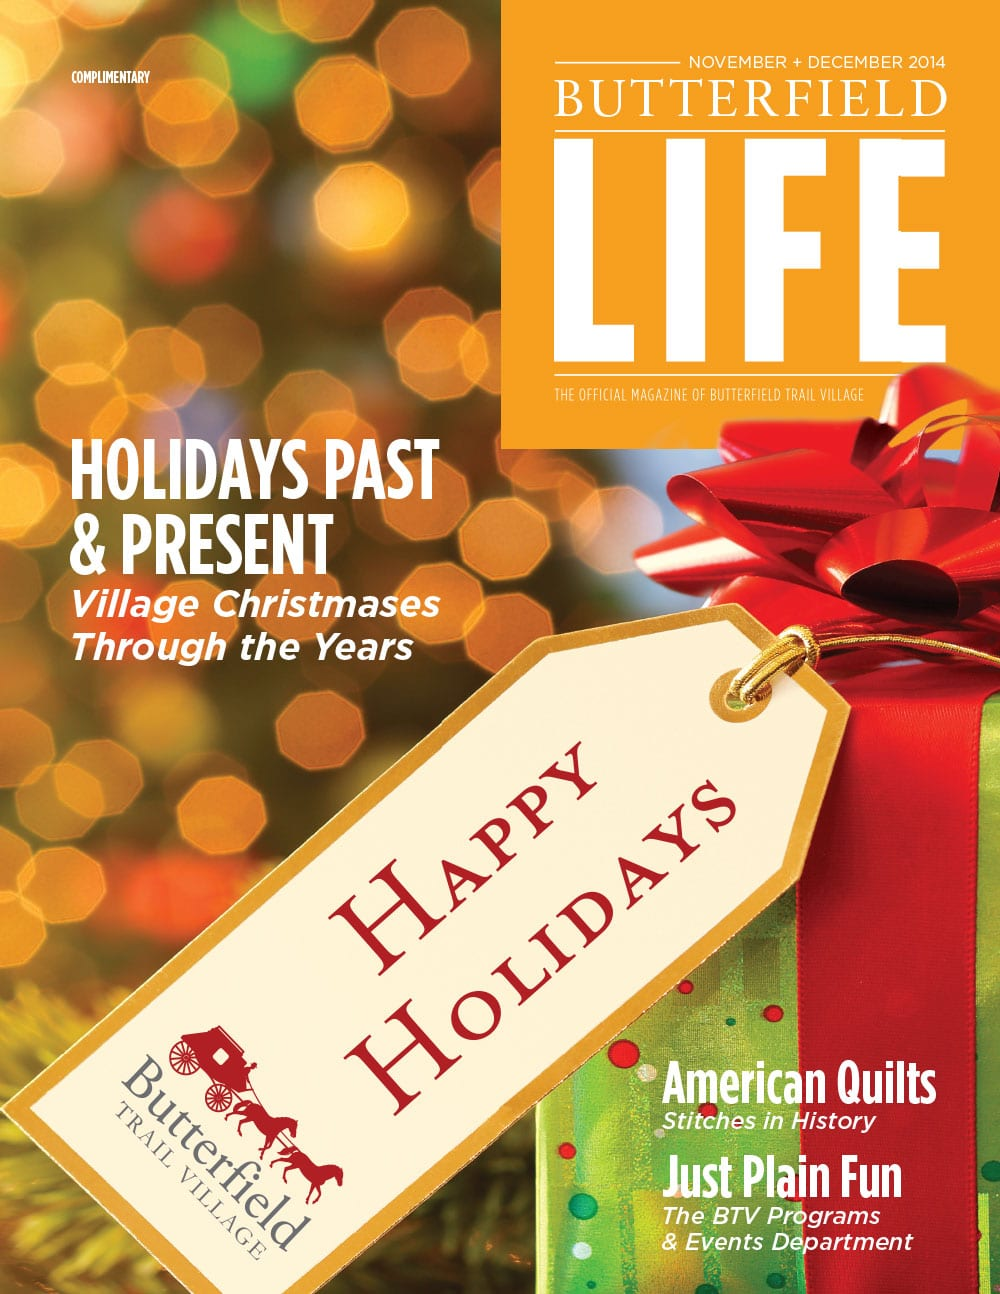 butterfield-life_nov-dec2014_cover